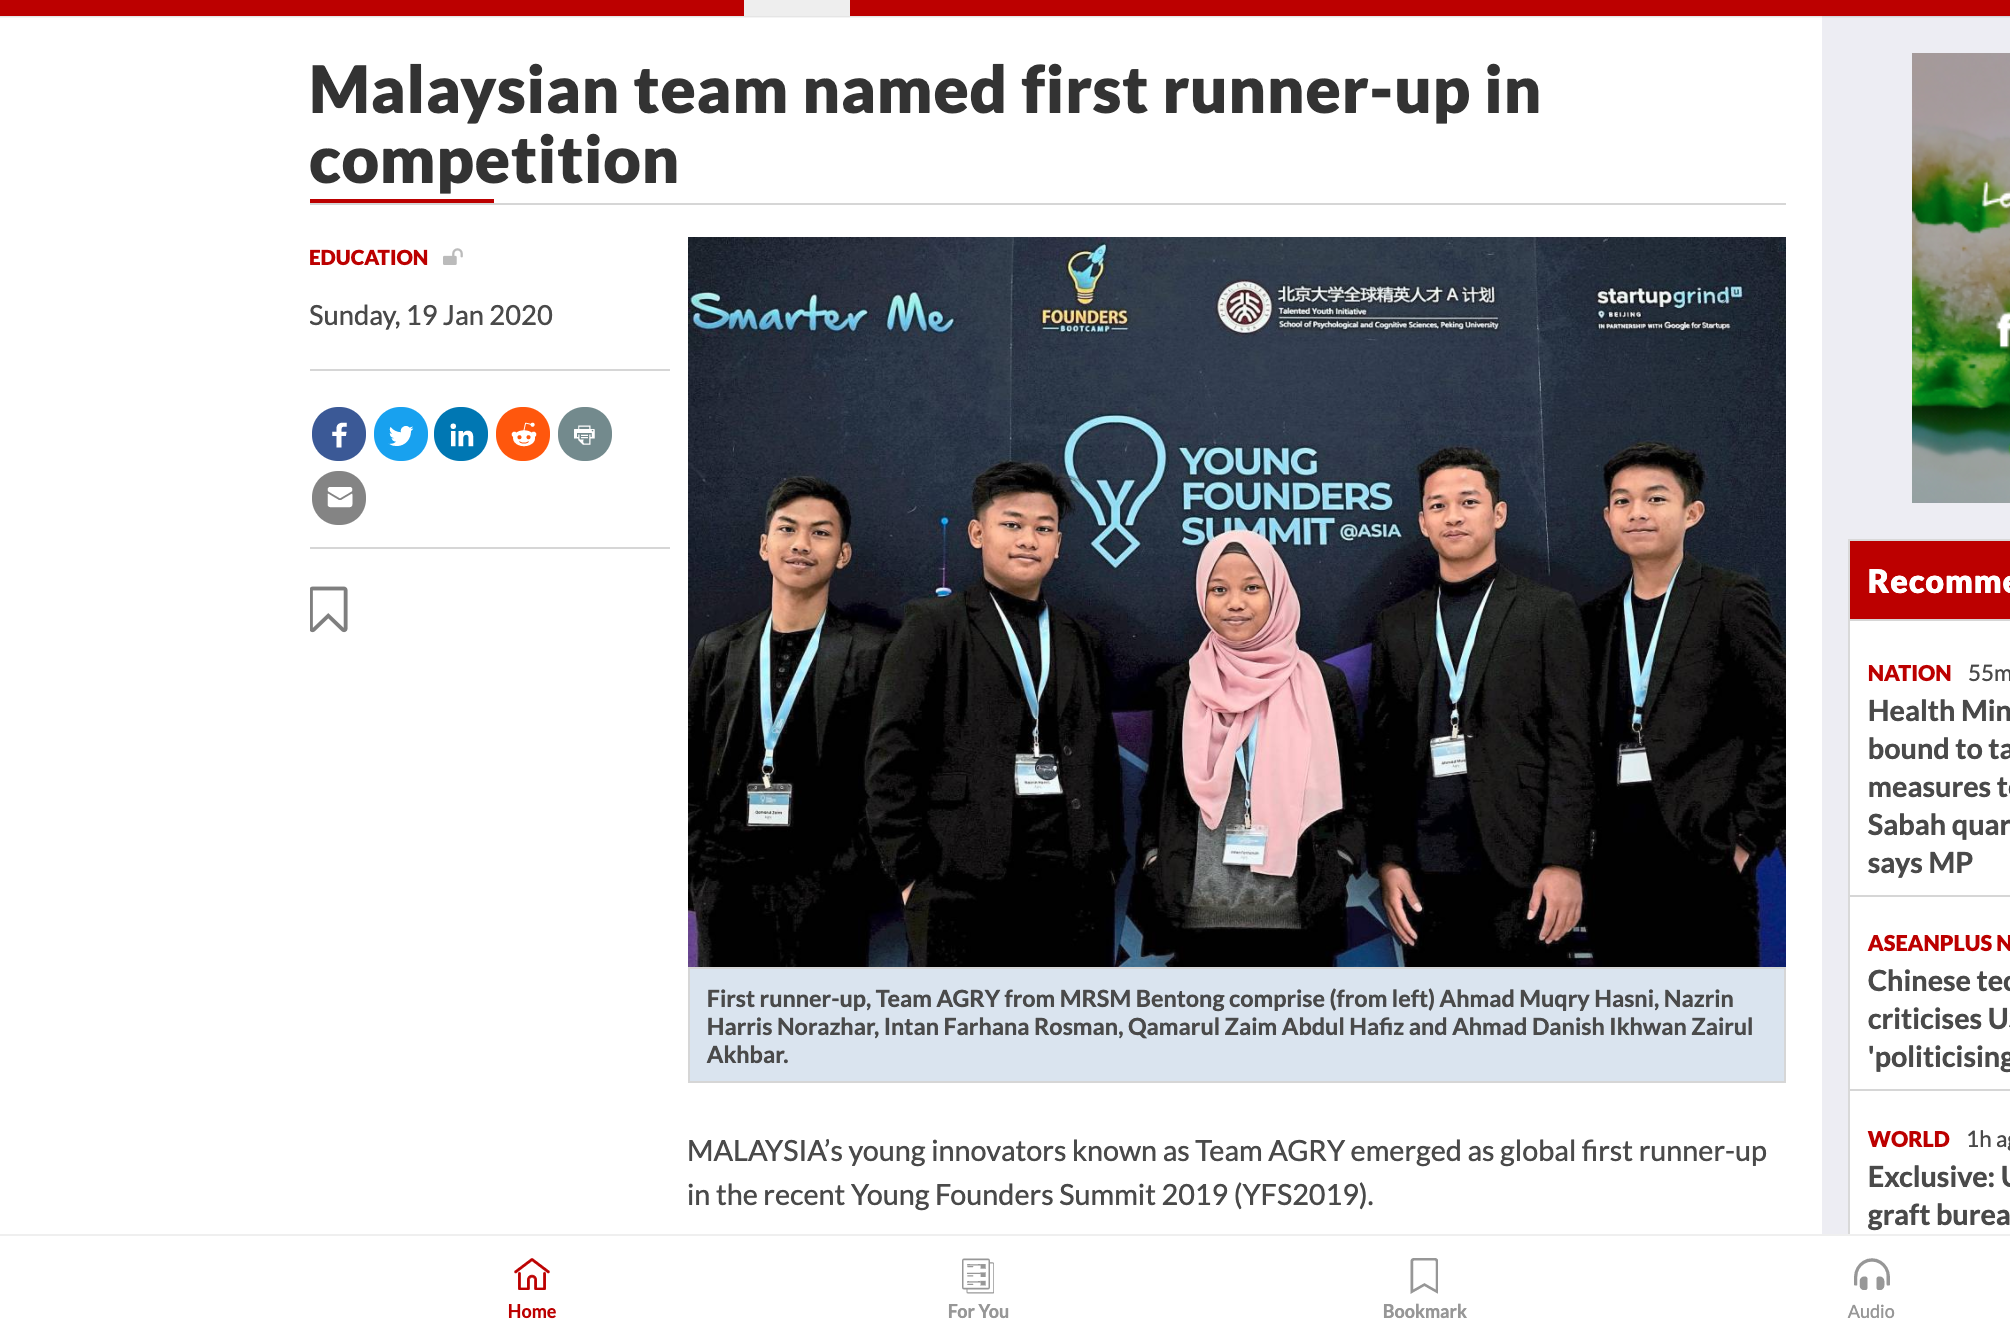 The Star Young Founders Summit